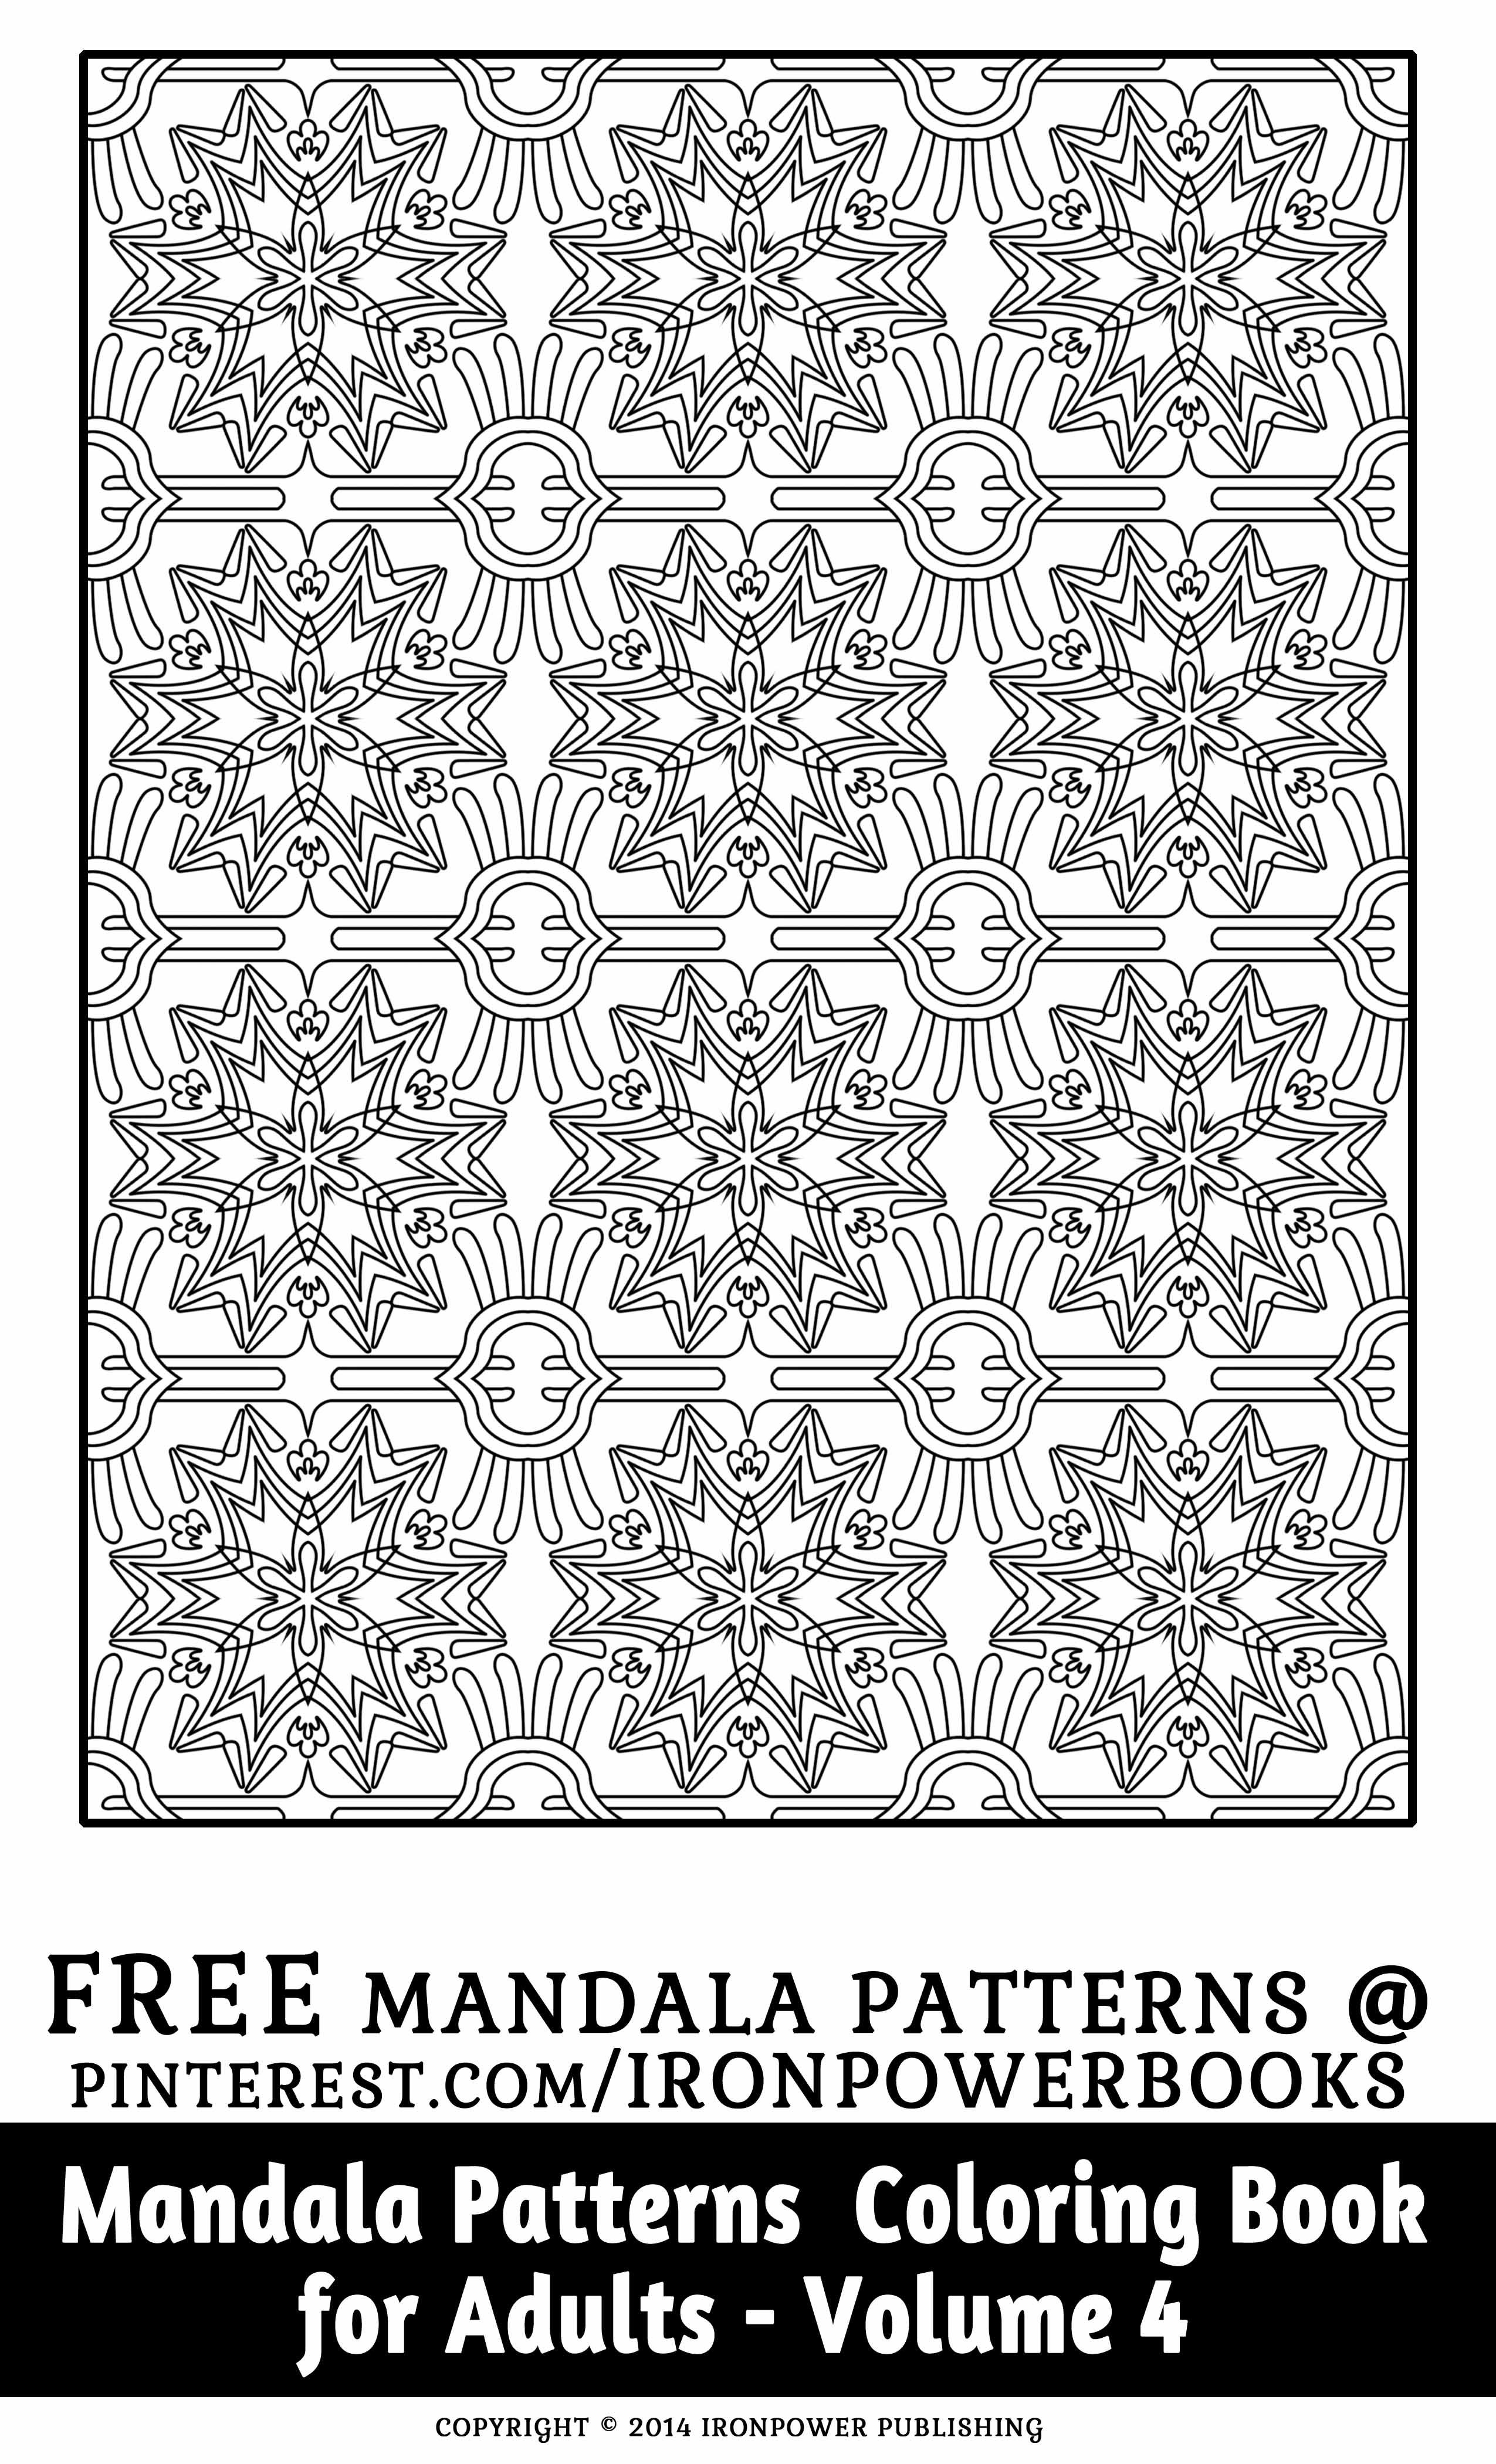 FREE Pattern Design Coloring Pages For Adults